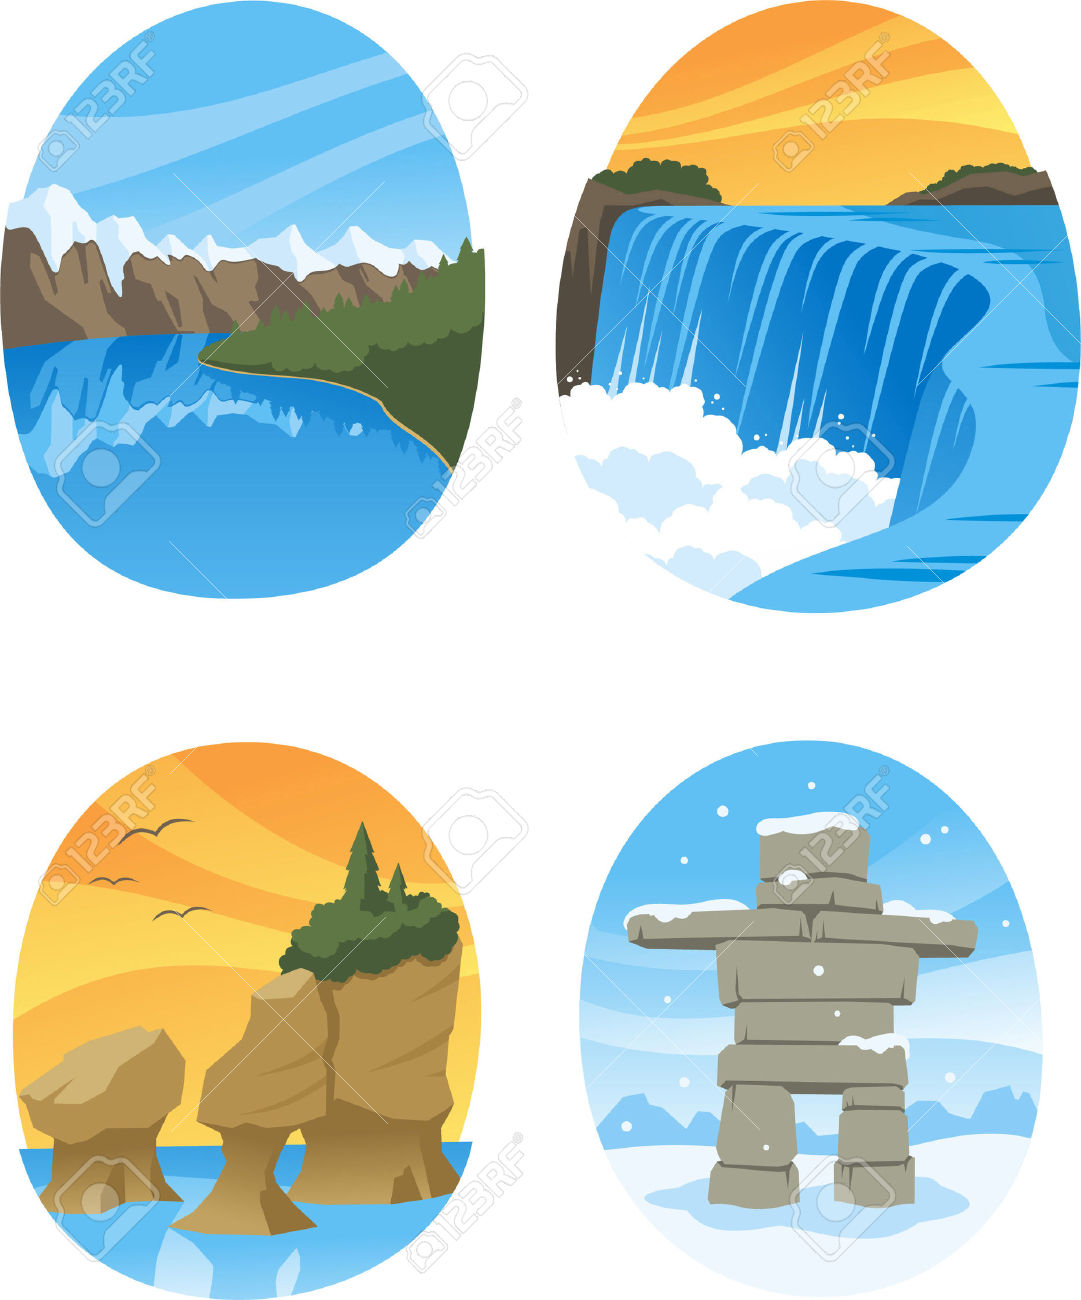 Canadian Rockies clipart #9, Download drawings